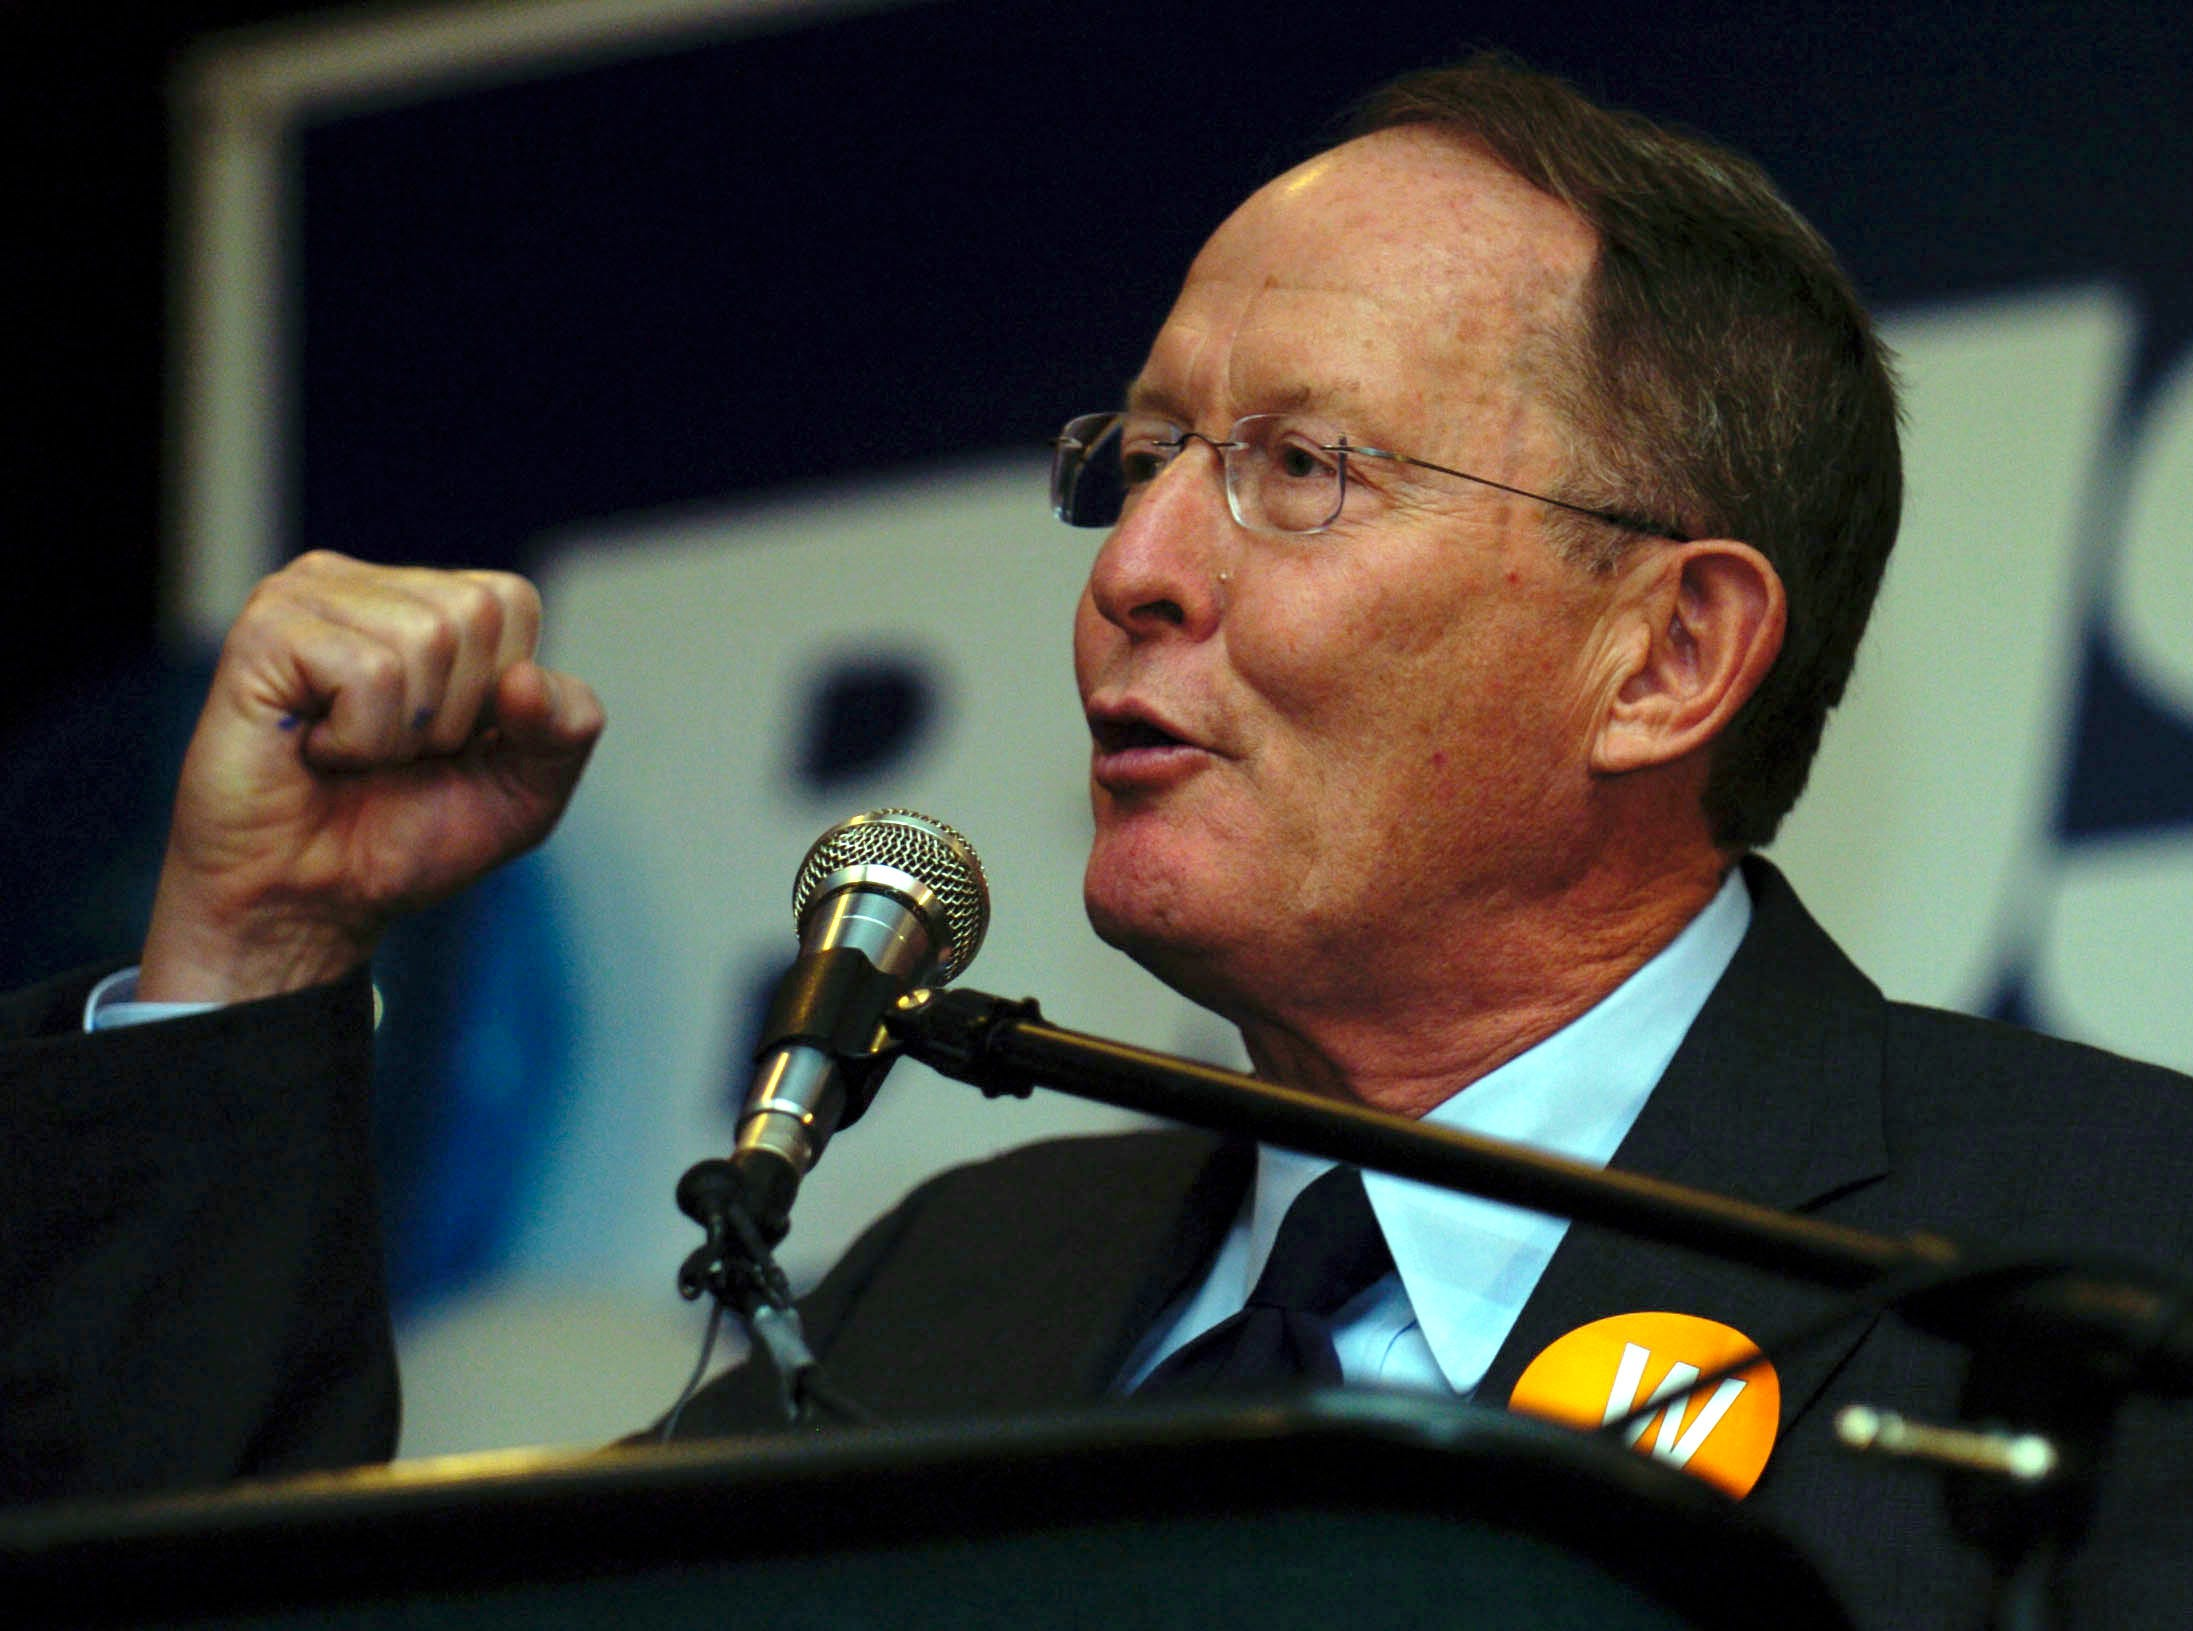 TN Senator Lamar Alexander speaks during the Knox County Republican Party celebration held at the Hilton Hotel in downtown Knoxville.